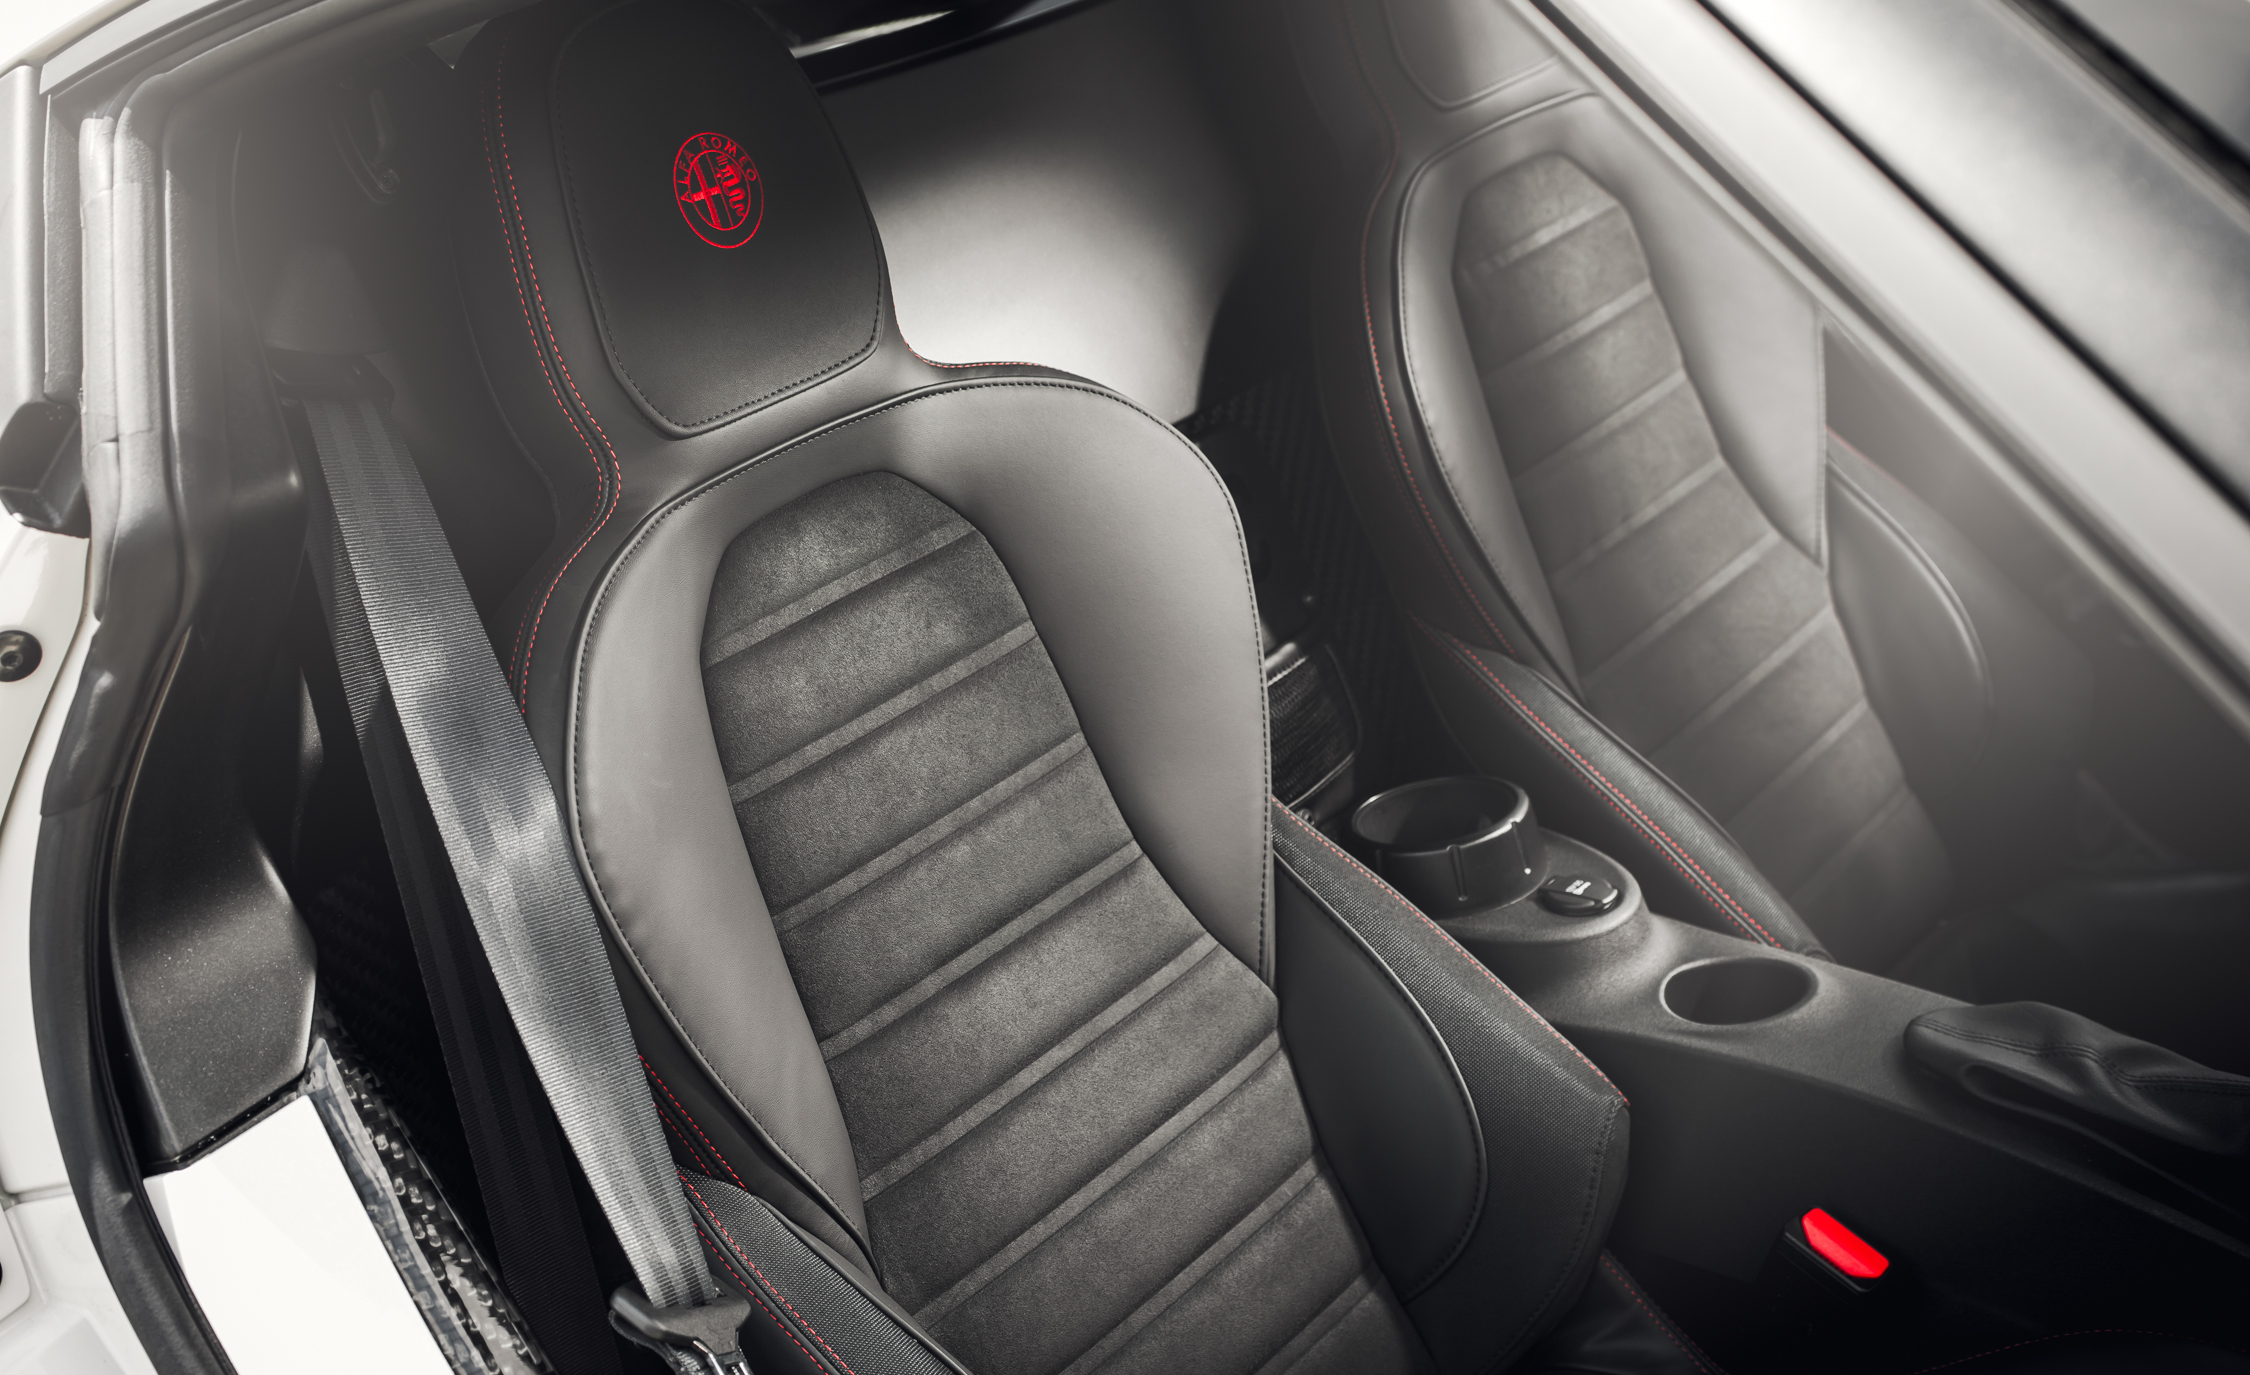 2015 Alfa Romeo 4C Interior (Photo 23 of 25)